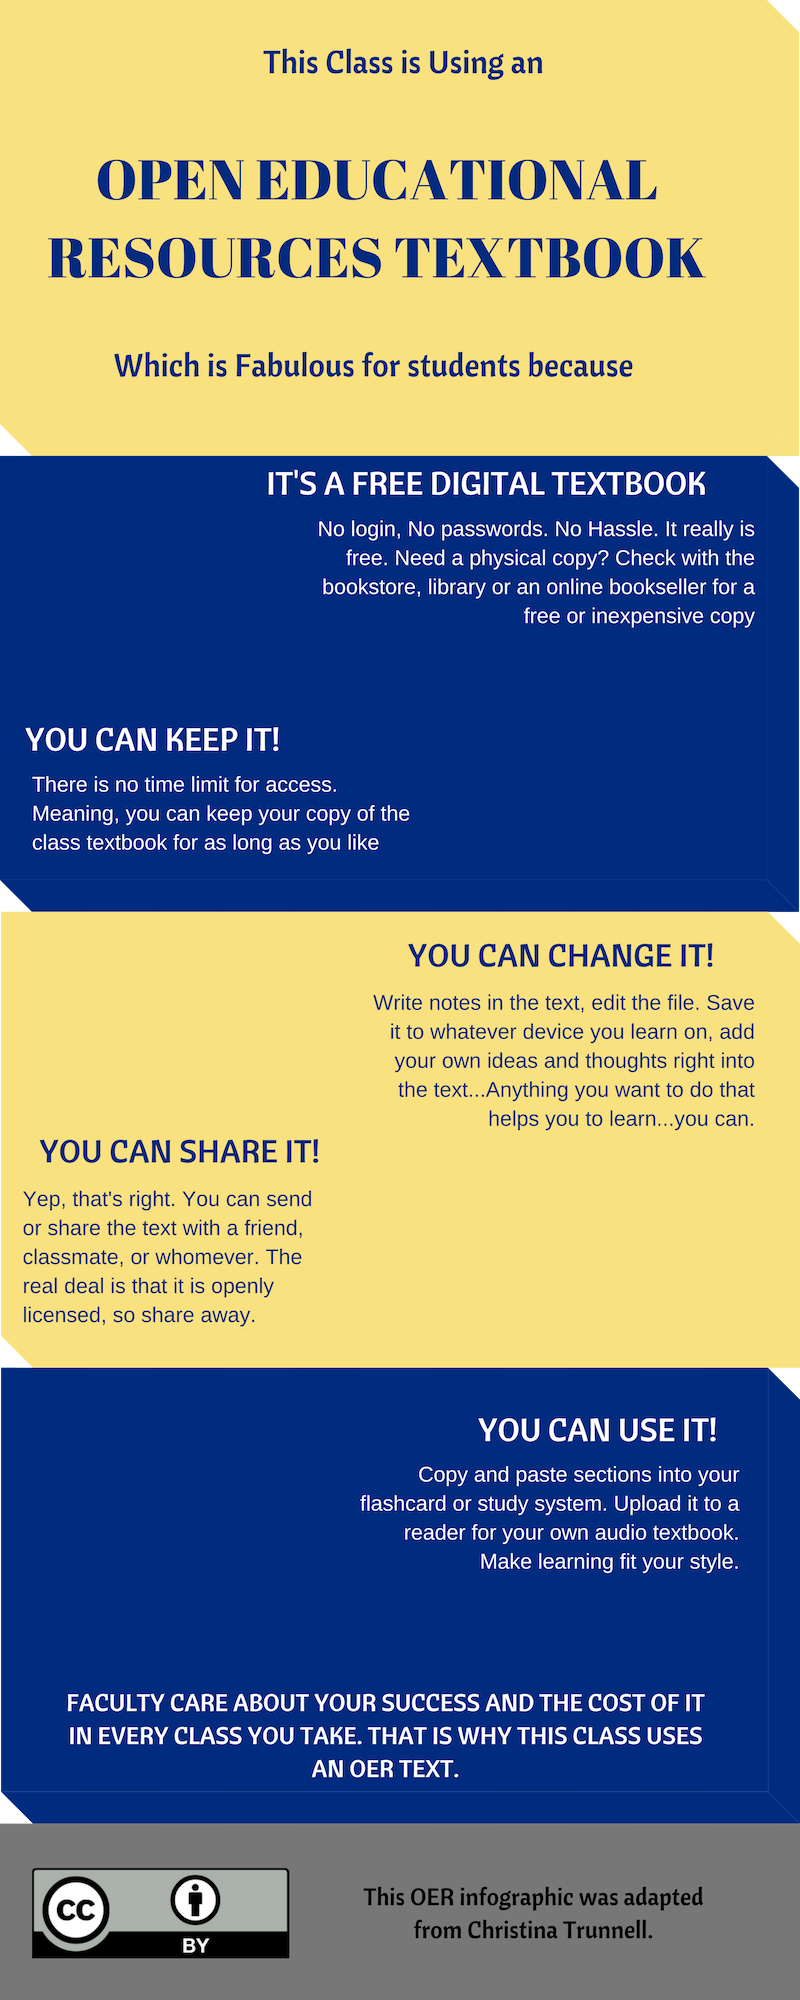 CC BY OER Course Infographic